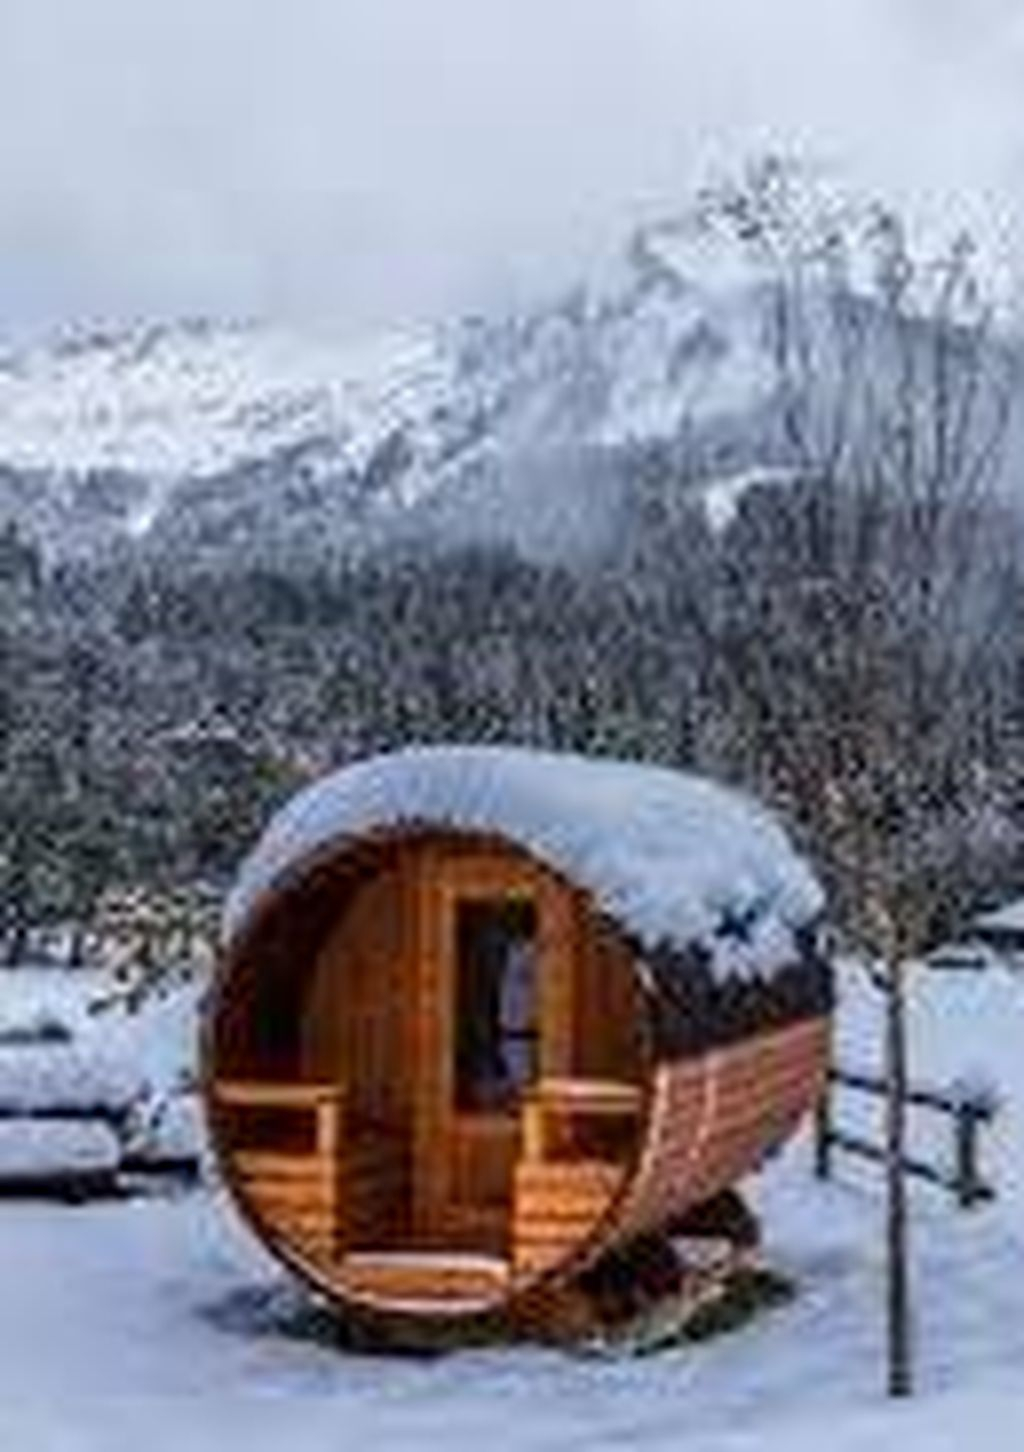 Cool Bathhouse Winter Camp Design Ideas With Rural Accents To Have Right Now 13